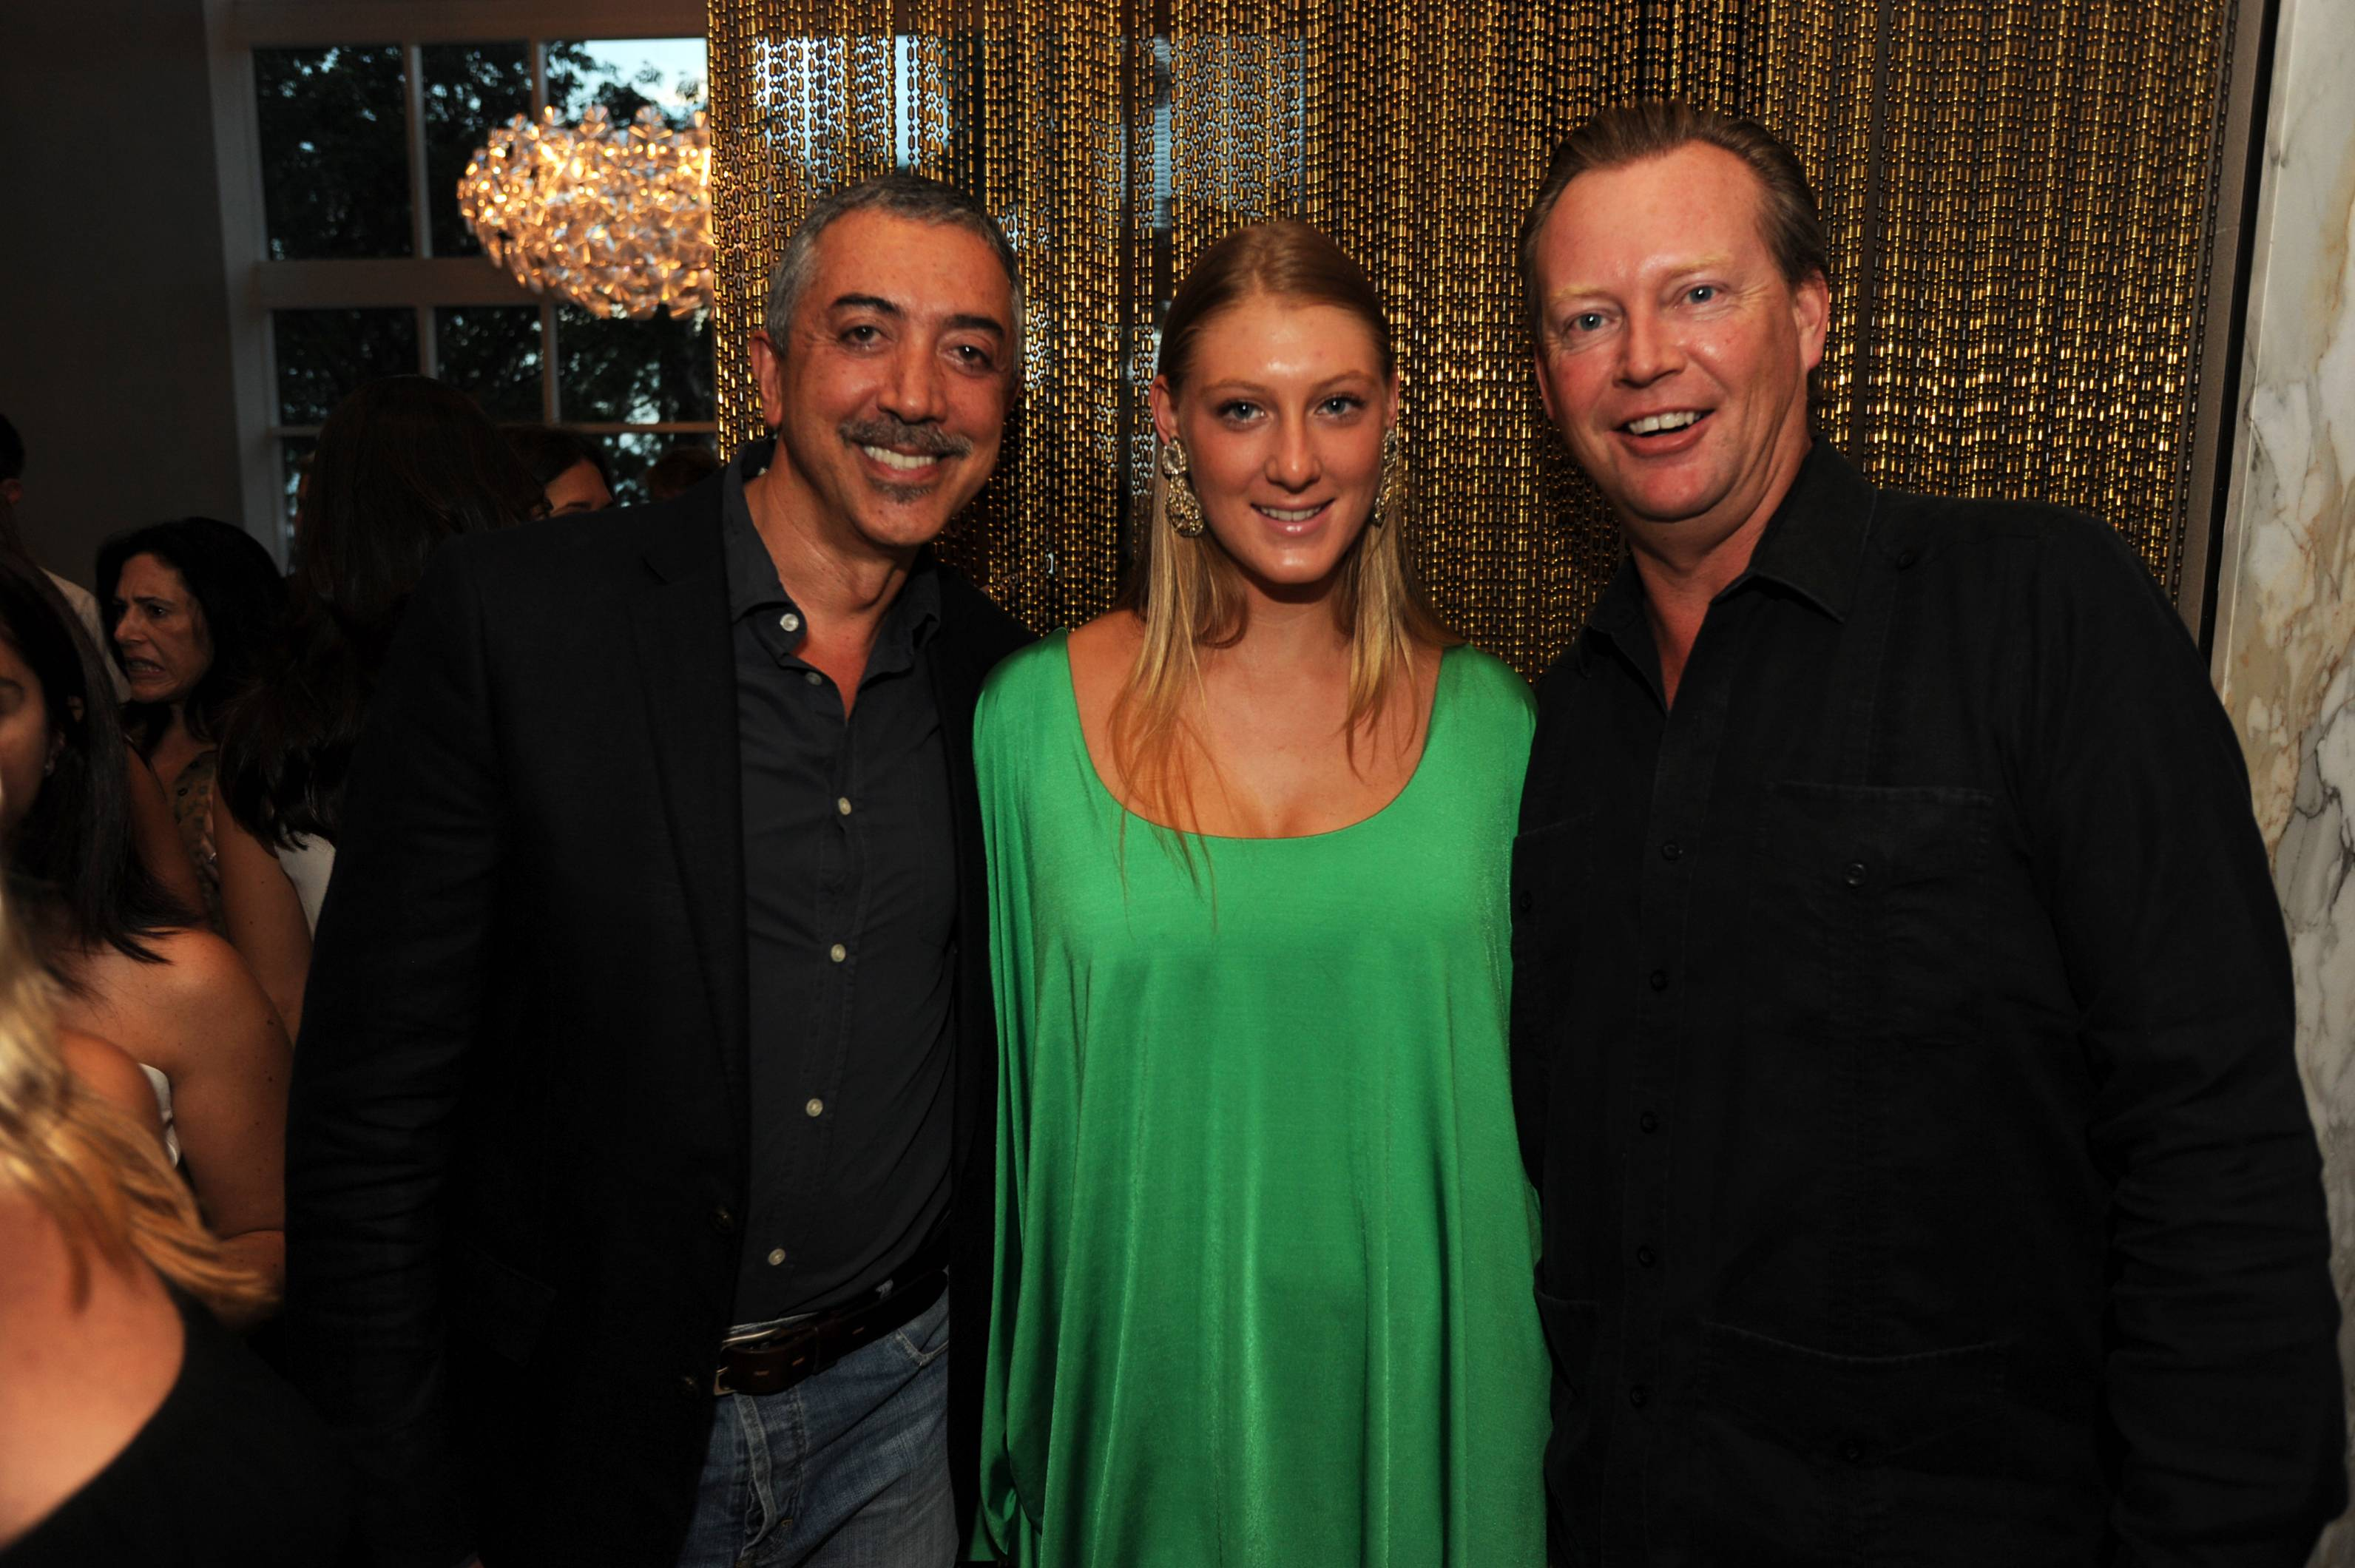 Ali Mahallati, Laura Preuss-Kuhne and Axel Preuss-Kuhne at the Paramount Bay Grand Opening